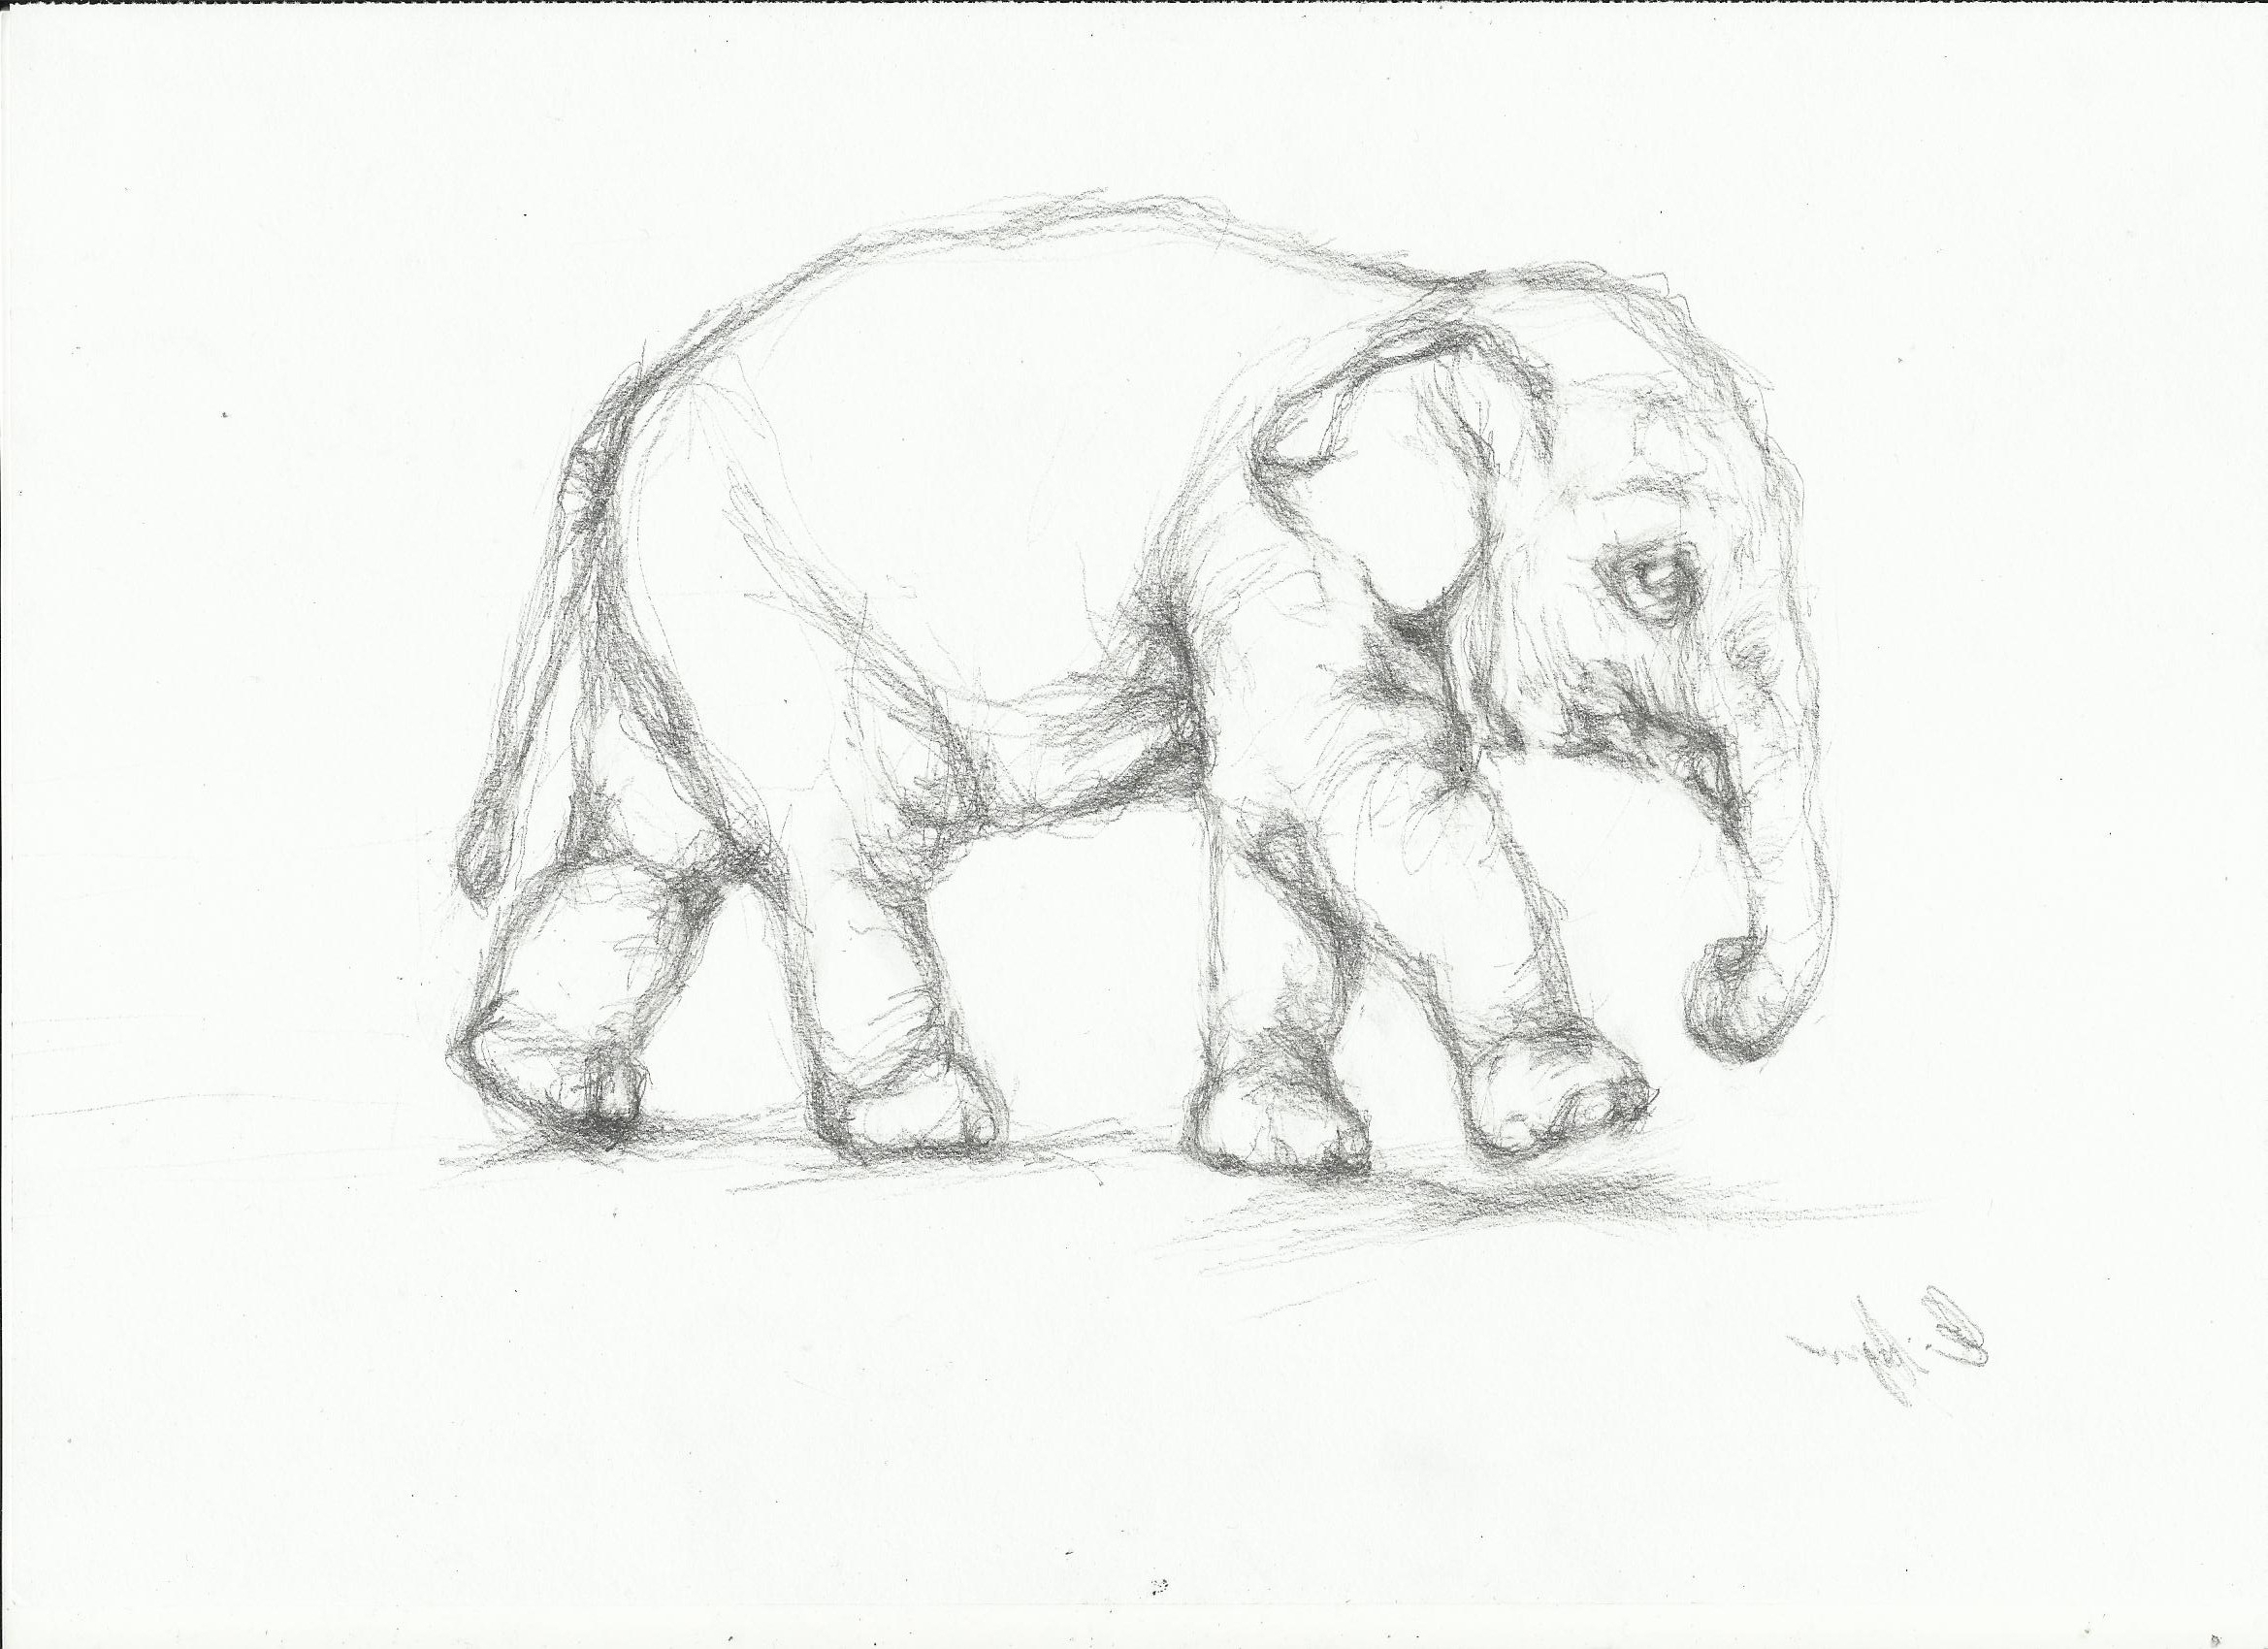 2338x1700 gallery free pencil sketches of animals